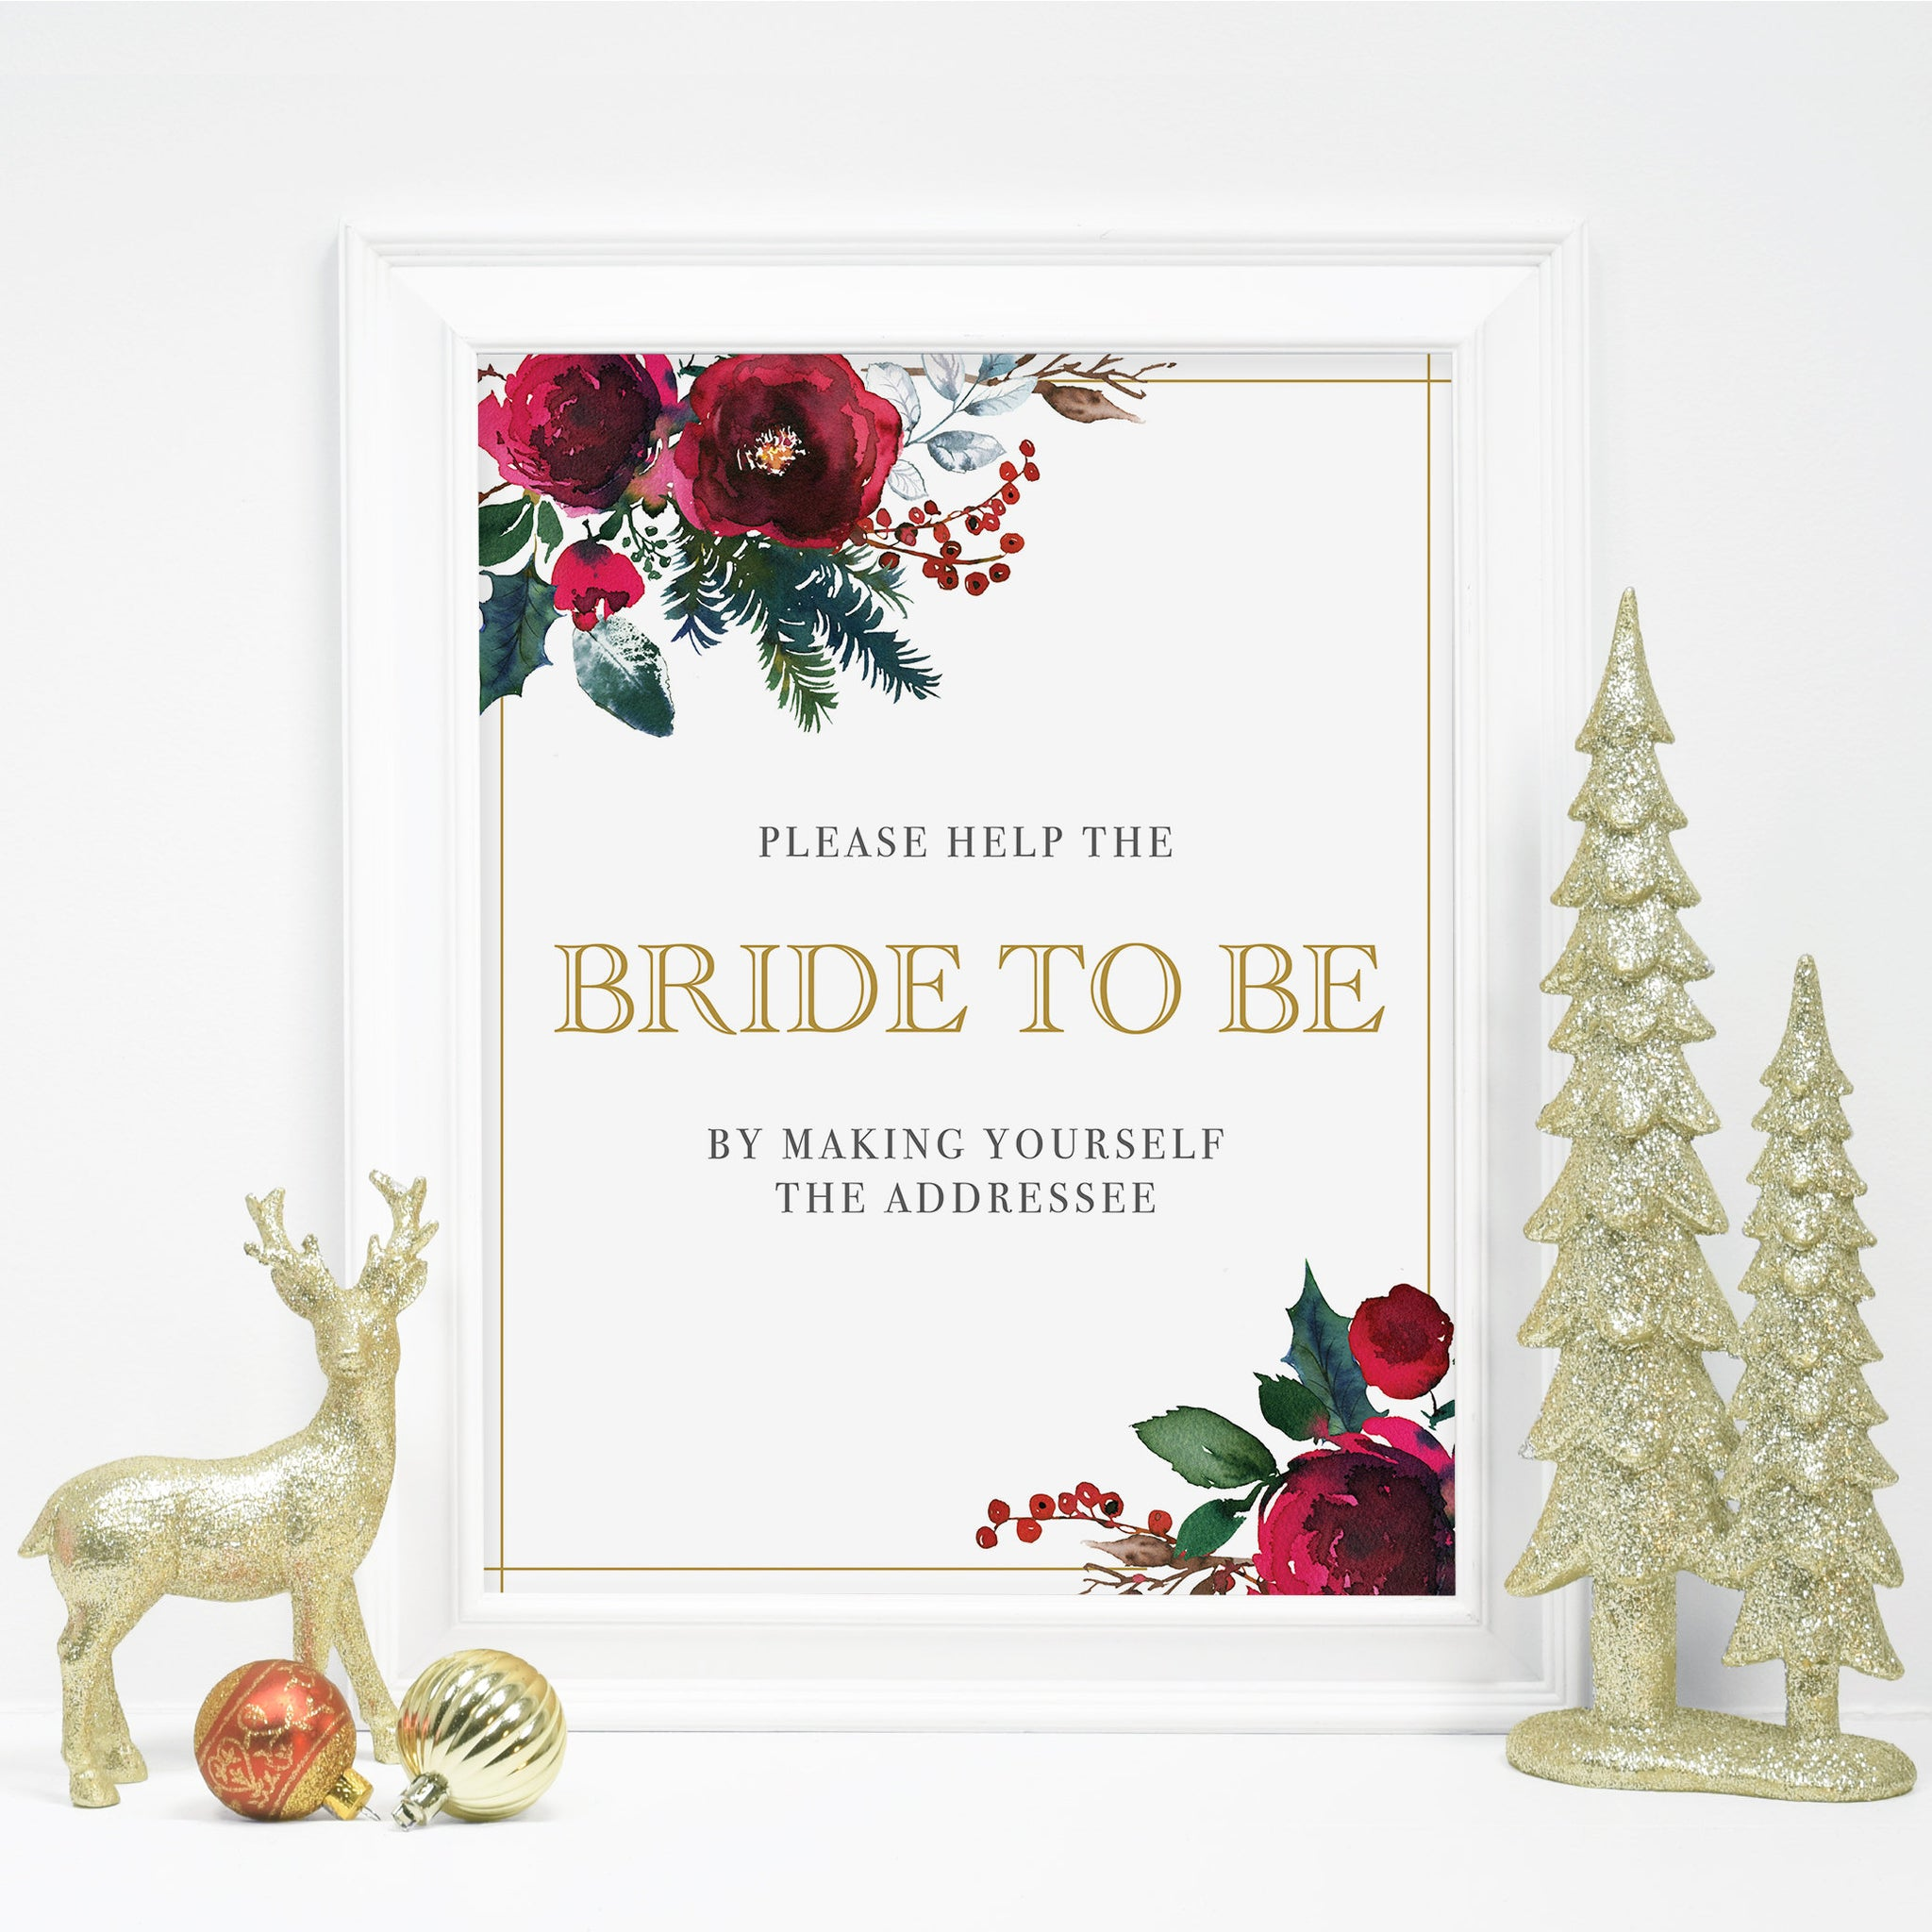 Christmas Bridal Shower Addressee Sign Printable, Address an Envelope Sign, Winter Bridal Shower Decorations, INSTANT DOWNLOAD - CG100 - @PlumPolkaDot